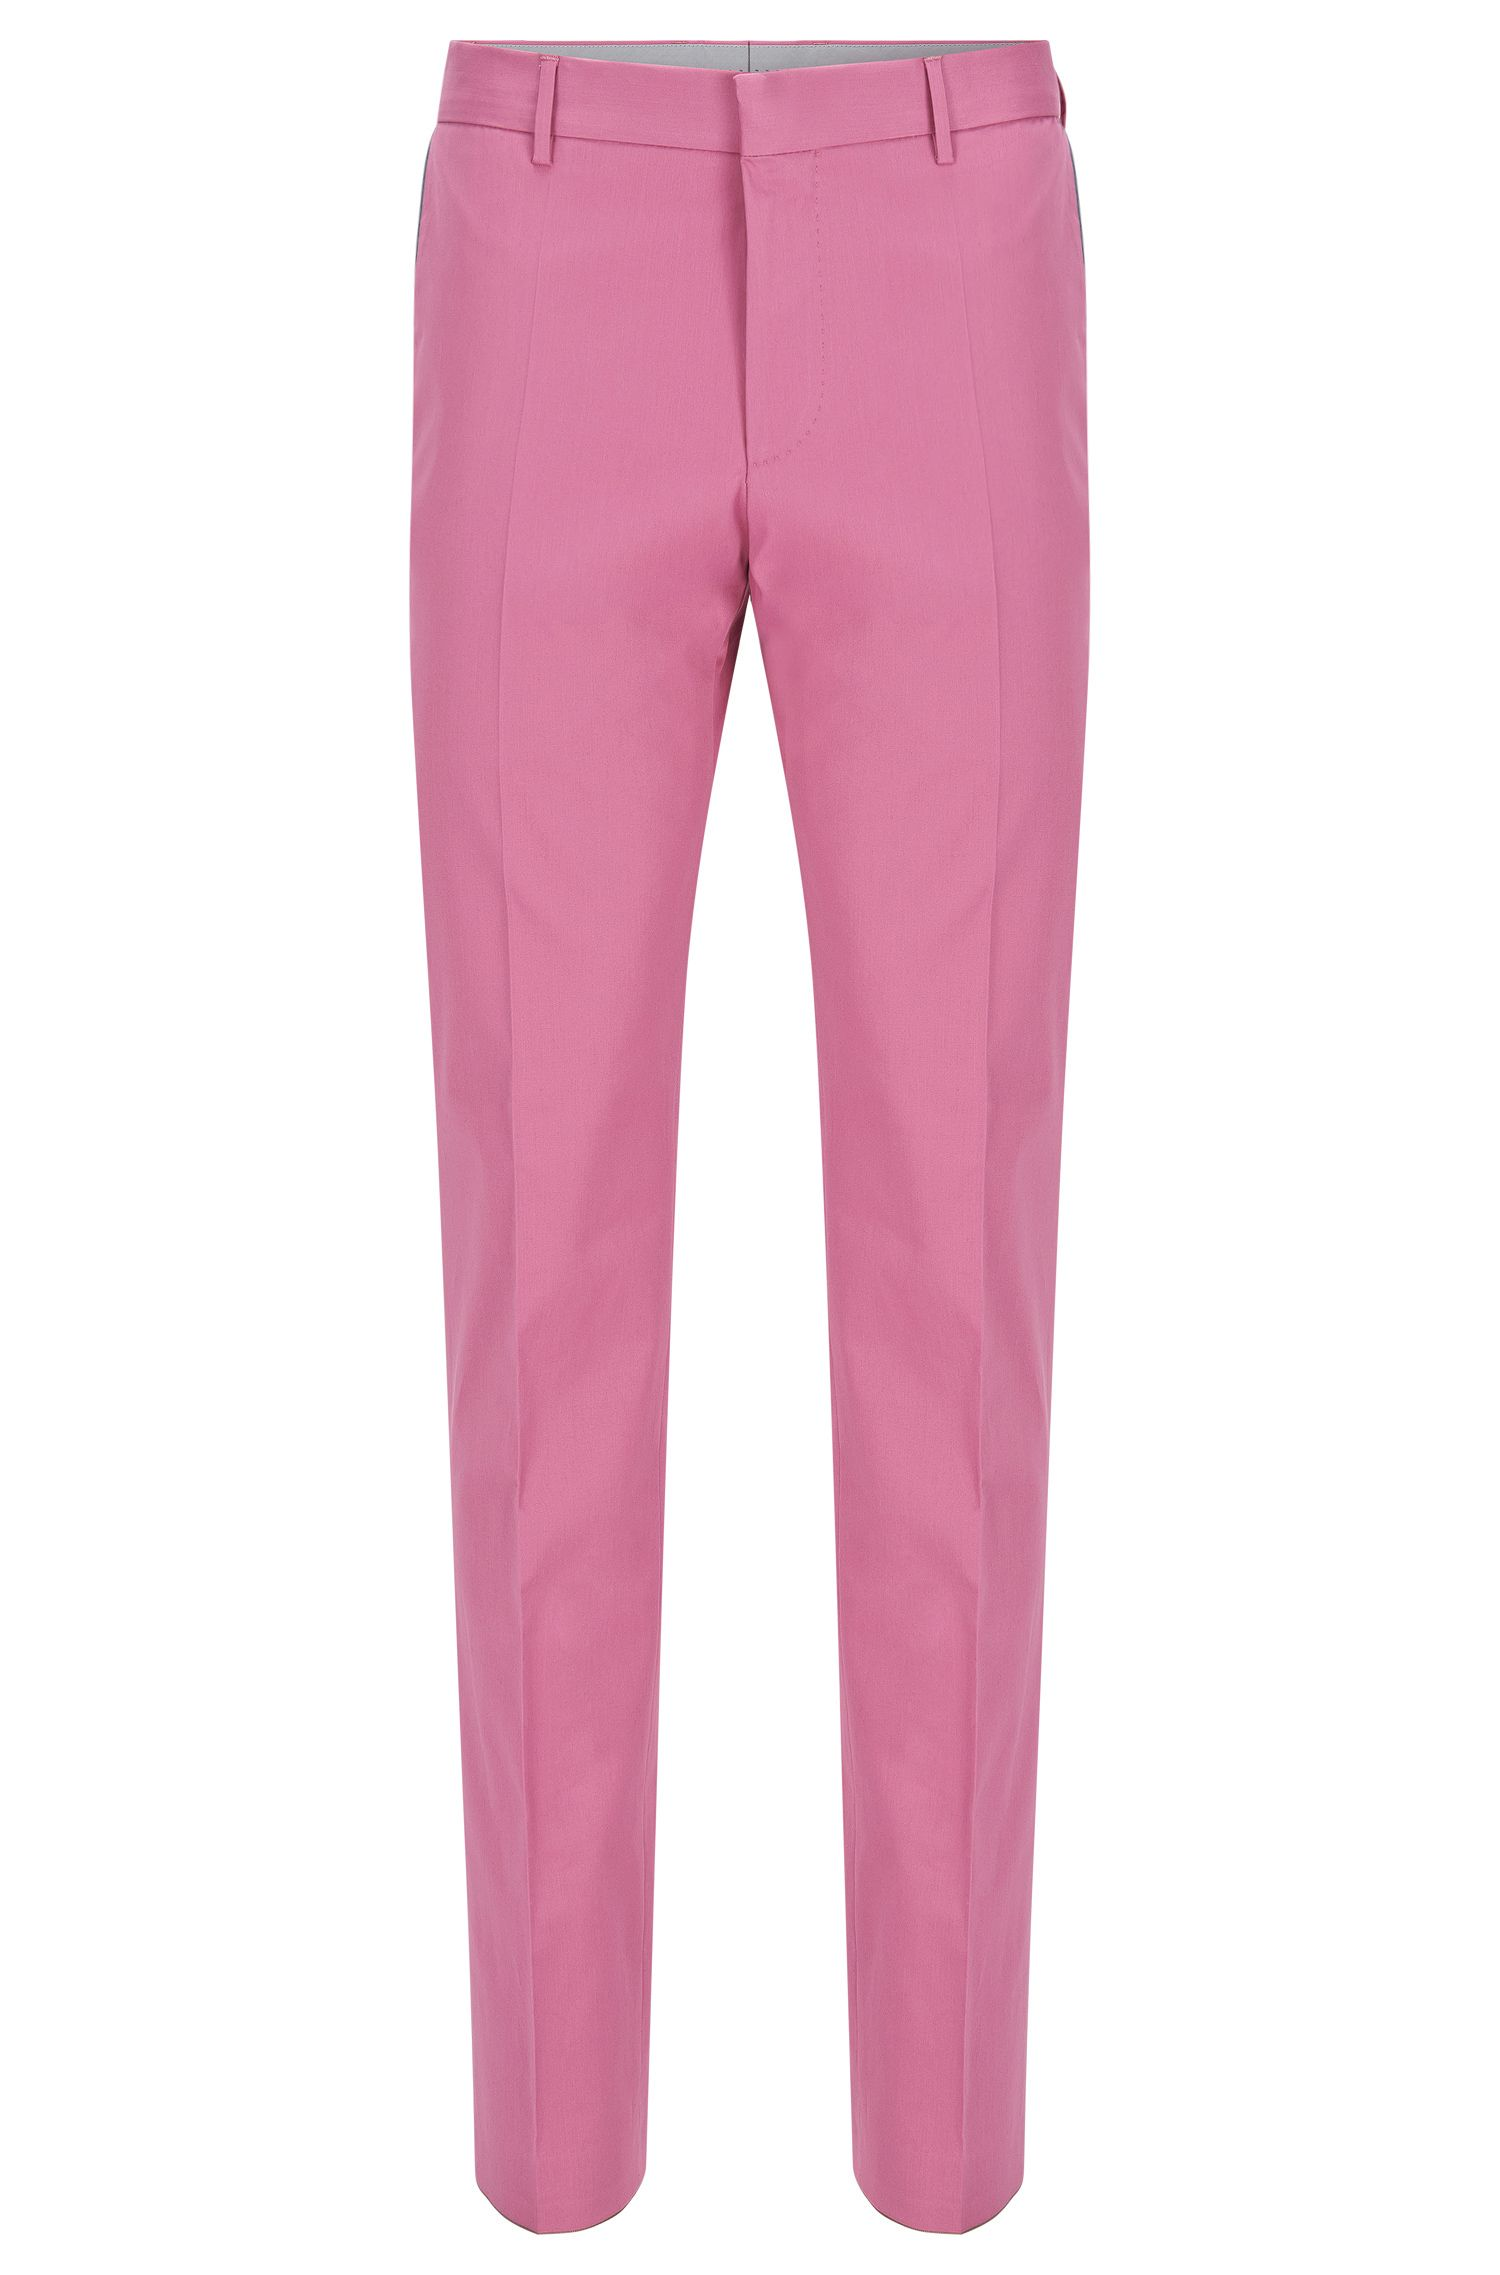 Stretch Cotton Trousers, Slim Fit   Bevan